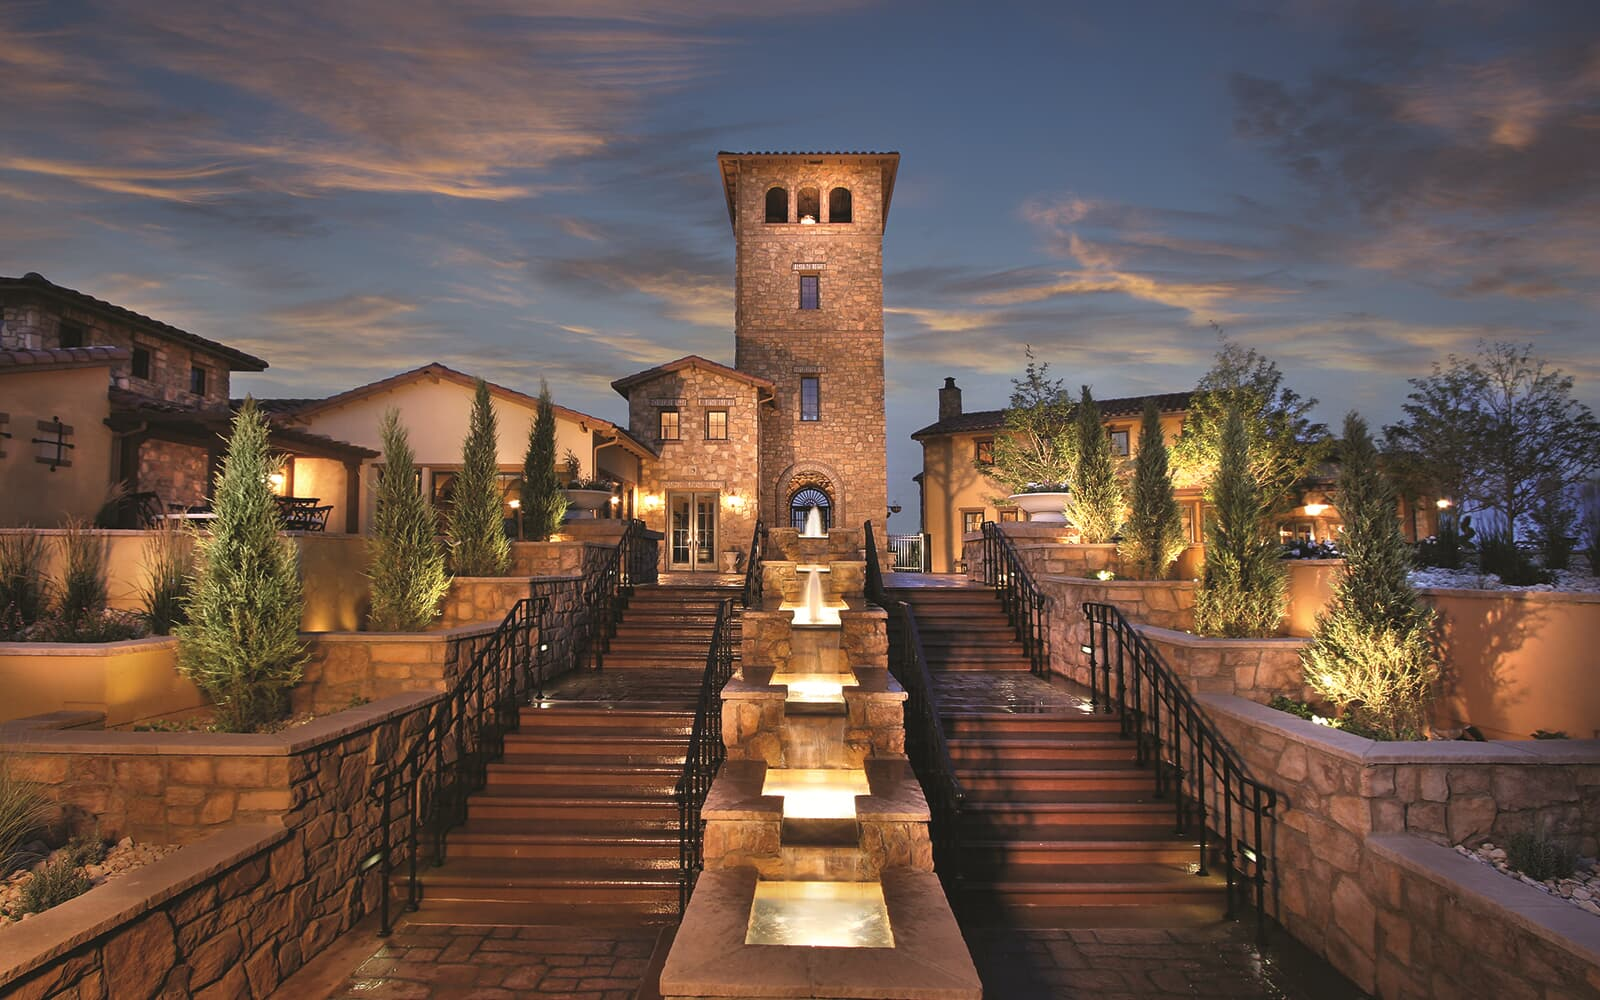 Lifestyle-Photo-Community-Retreat-Fountains-Tower-Dusk-Solterra-Denver-Colorado